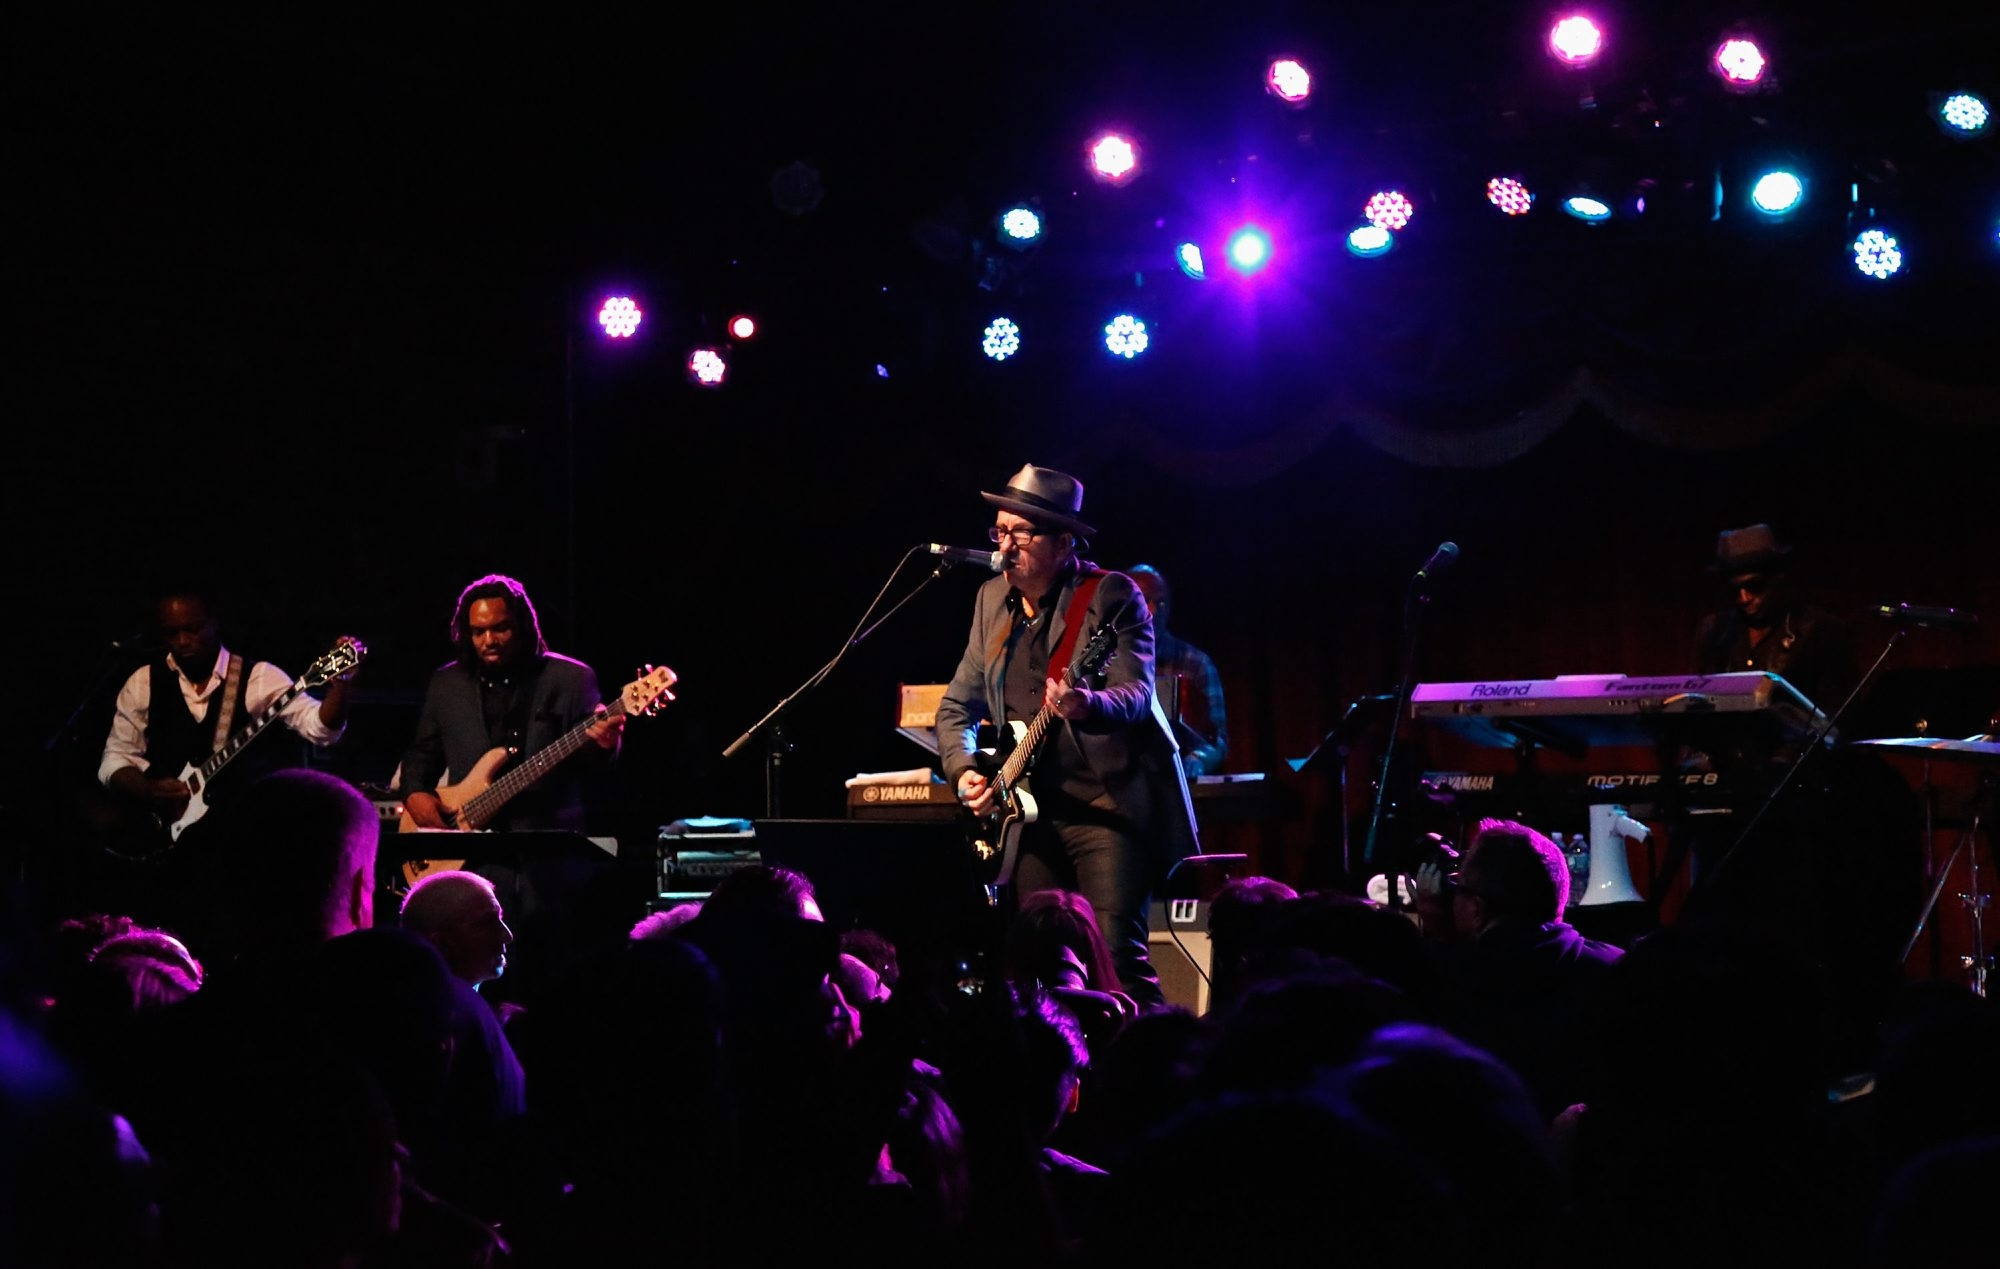 """Elvis Costello and The Roots perform songs from their new album """"Wise Up Ghost"""" at Brooklyn Bowl in New York City."""